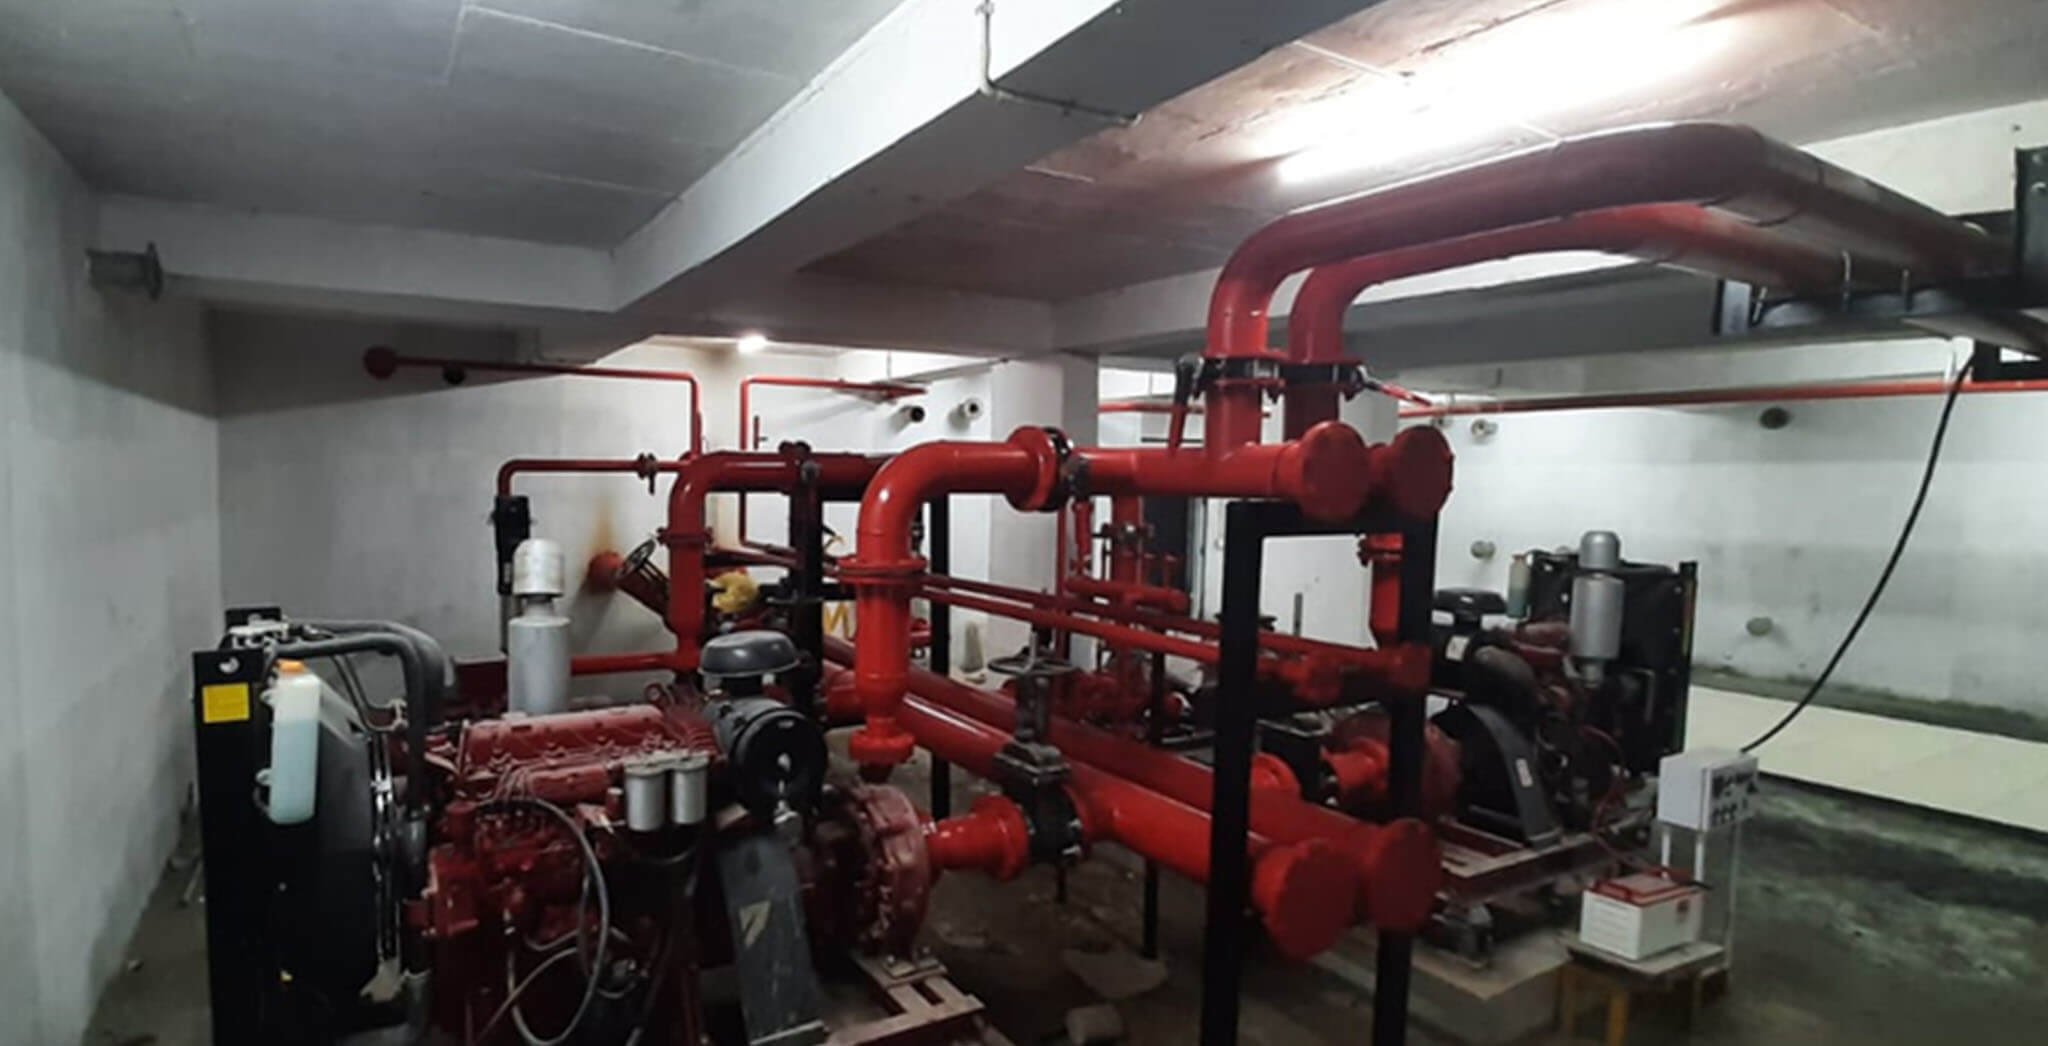 May 2020 - Pump room: Fire fighting pumps fixing completed